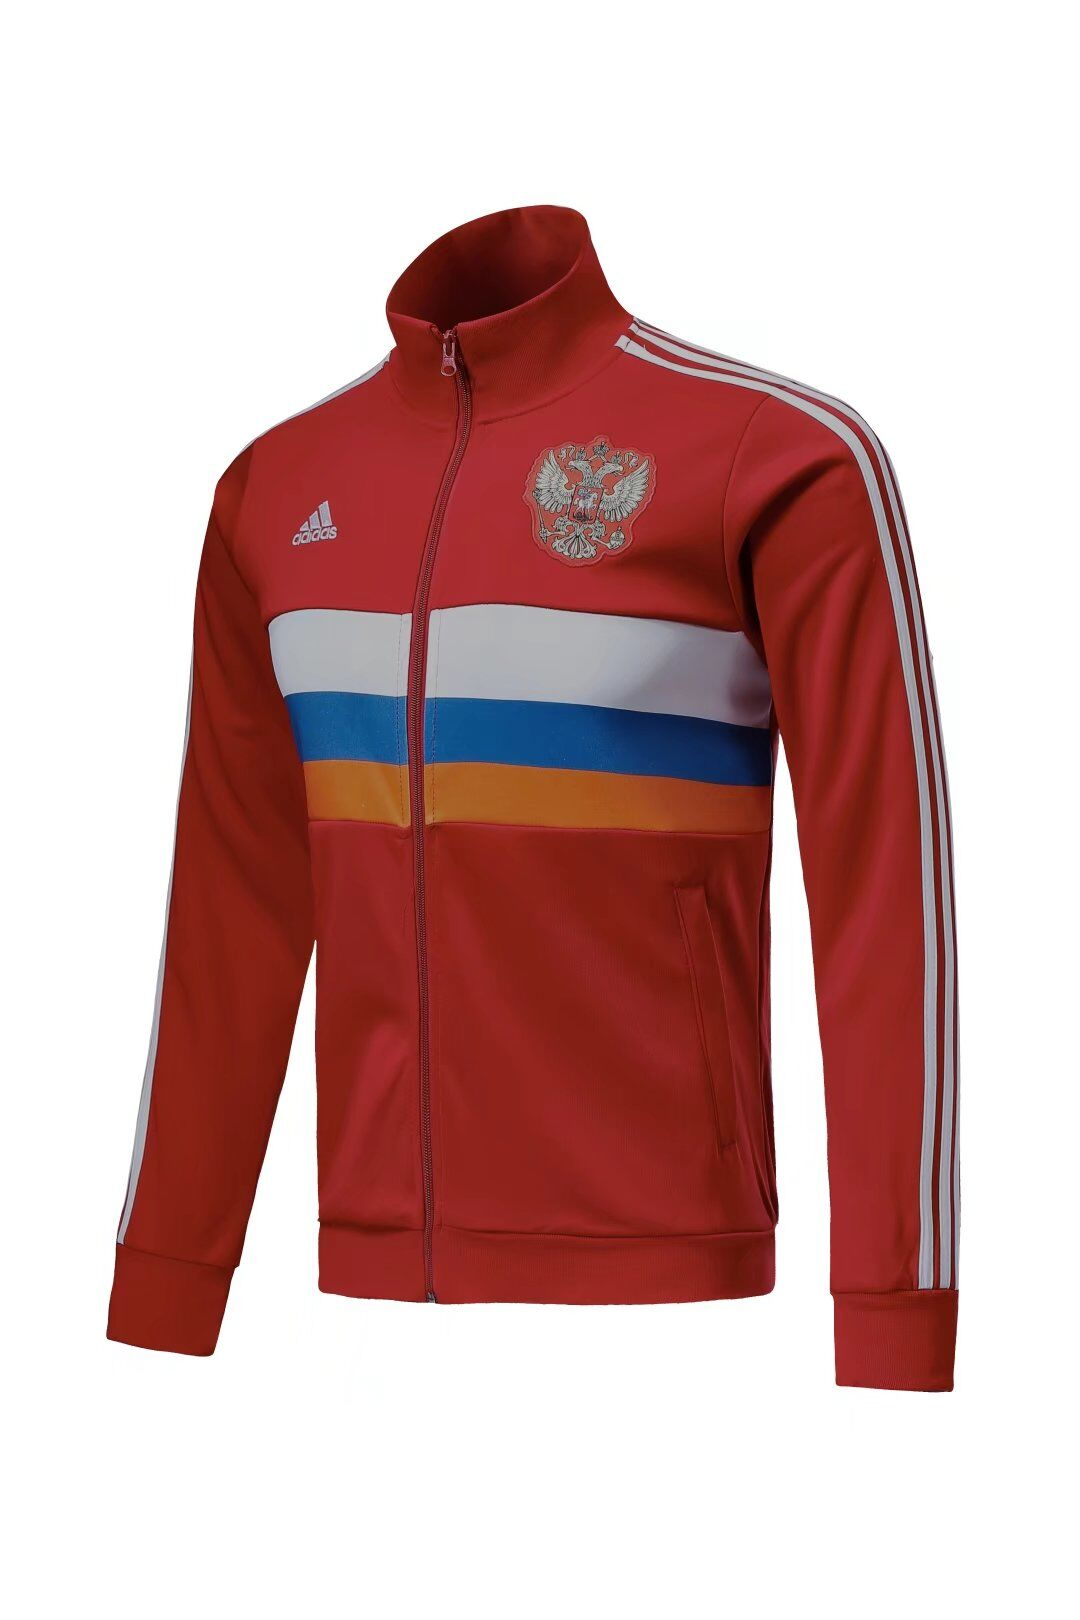 Russia Training Jacket Red 2018 World Cup